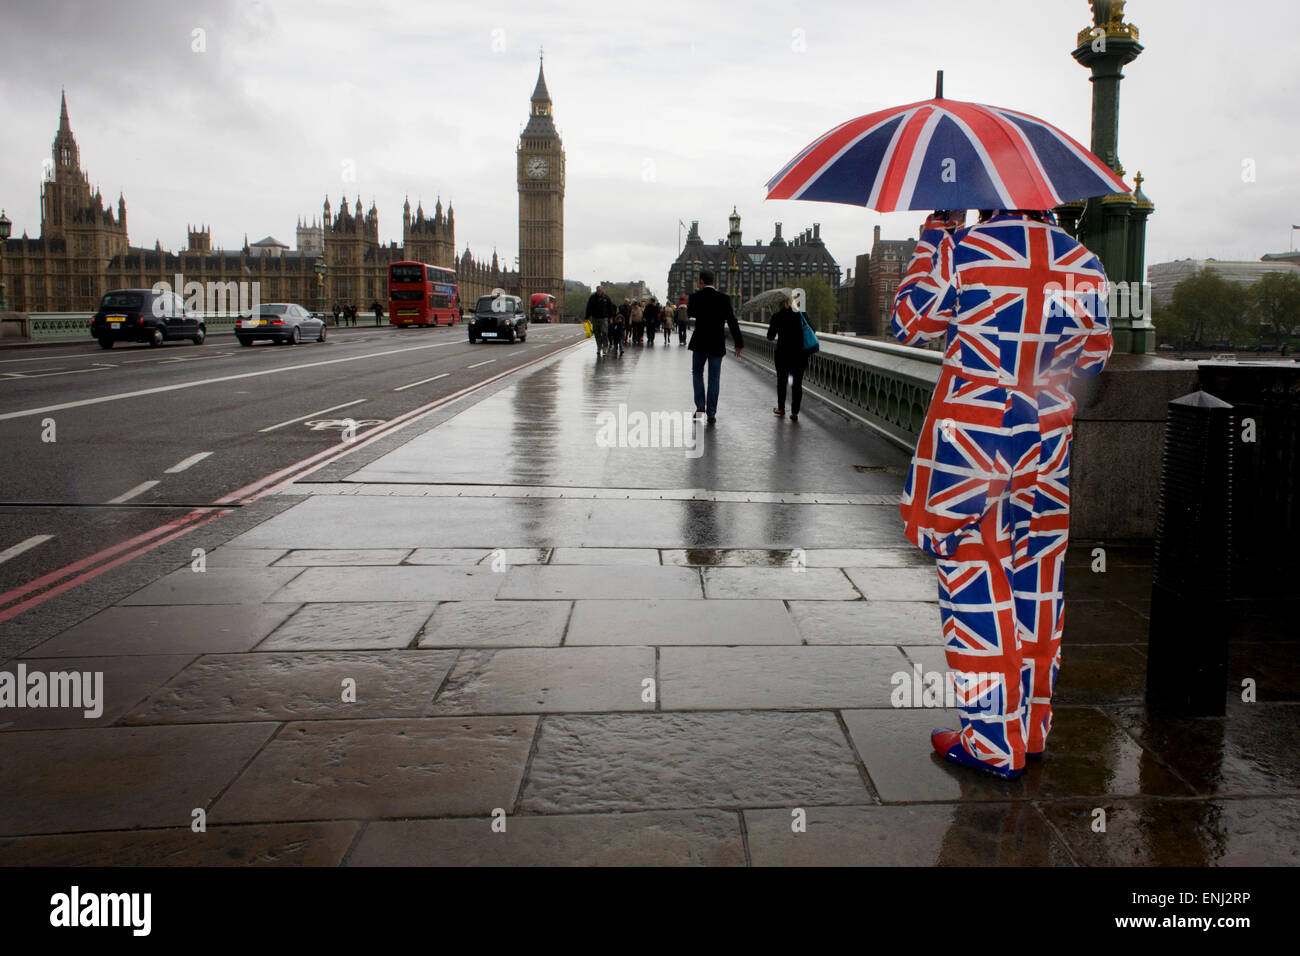 London Weather: London, UK. 6th May, 2015. UK Weather: High Winds And Wet